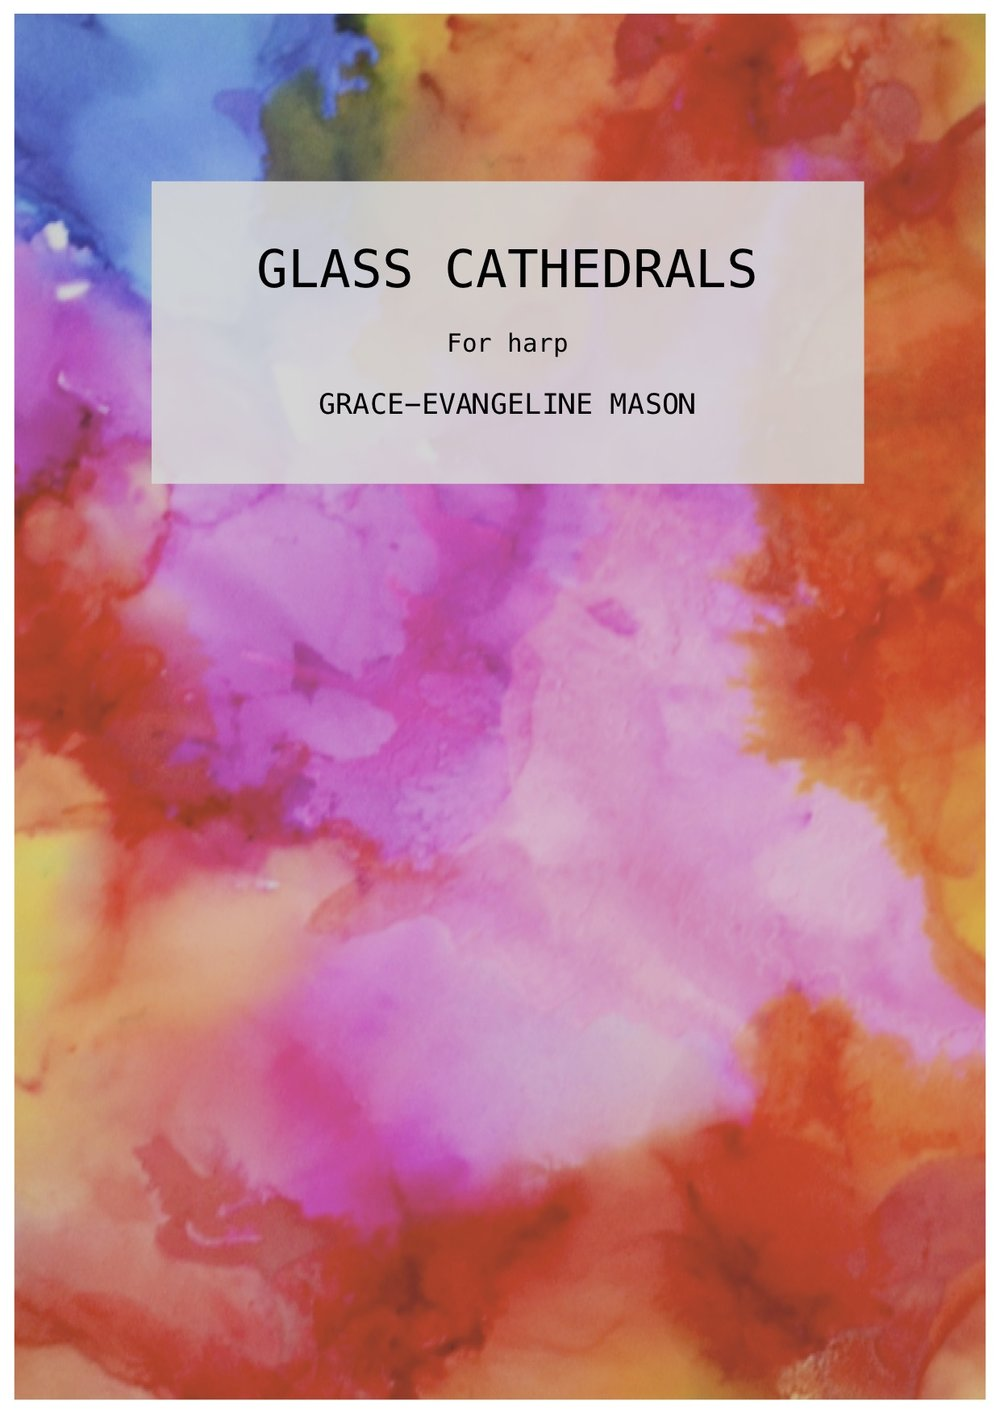 "'GLASS CATHEDRALS' (2019) - for HarpApprox. Duration: 3'30""Written for Lauren Scott as part of Psappha Ensemble's 'Composing For' Scheme 2019'Glass Cathedrals' (2019) for solo harp is inspired by the conceptual image of a grand cathedral constructed entirely of glass. The work seeks to create a delicate sound-world to emulate the fragility of the glass structure, contrasted by the use of prevailing, stronger indicatory material to emulate the large, imposing building itself. The piece aims to capture a moment of fleeting, temporary splendour before its great, and expectedly enduring, structure shatters. The melodic content is also inspired by lines from the poem 'Adonaïs' by Shelley:'Life, like a dome of many-coloured glass, Stains the white radiance of eternity' ©G.E.M.2018©Cover Image: 'Glass Cathedrals' Painting by Grace-Evangeline Mason 2019"